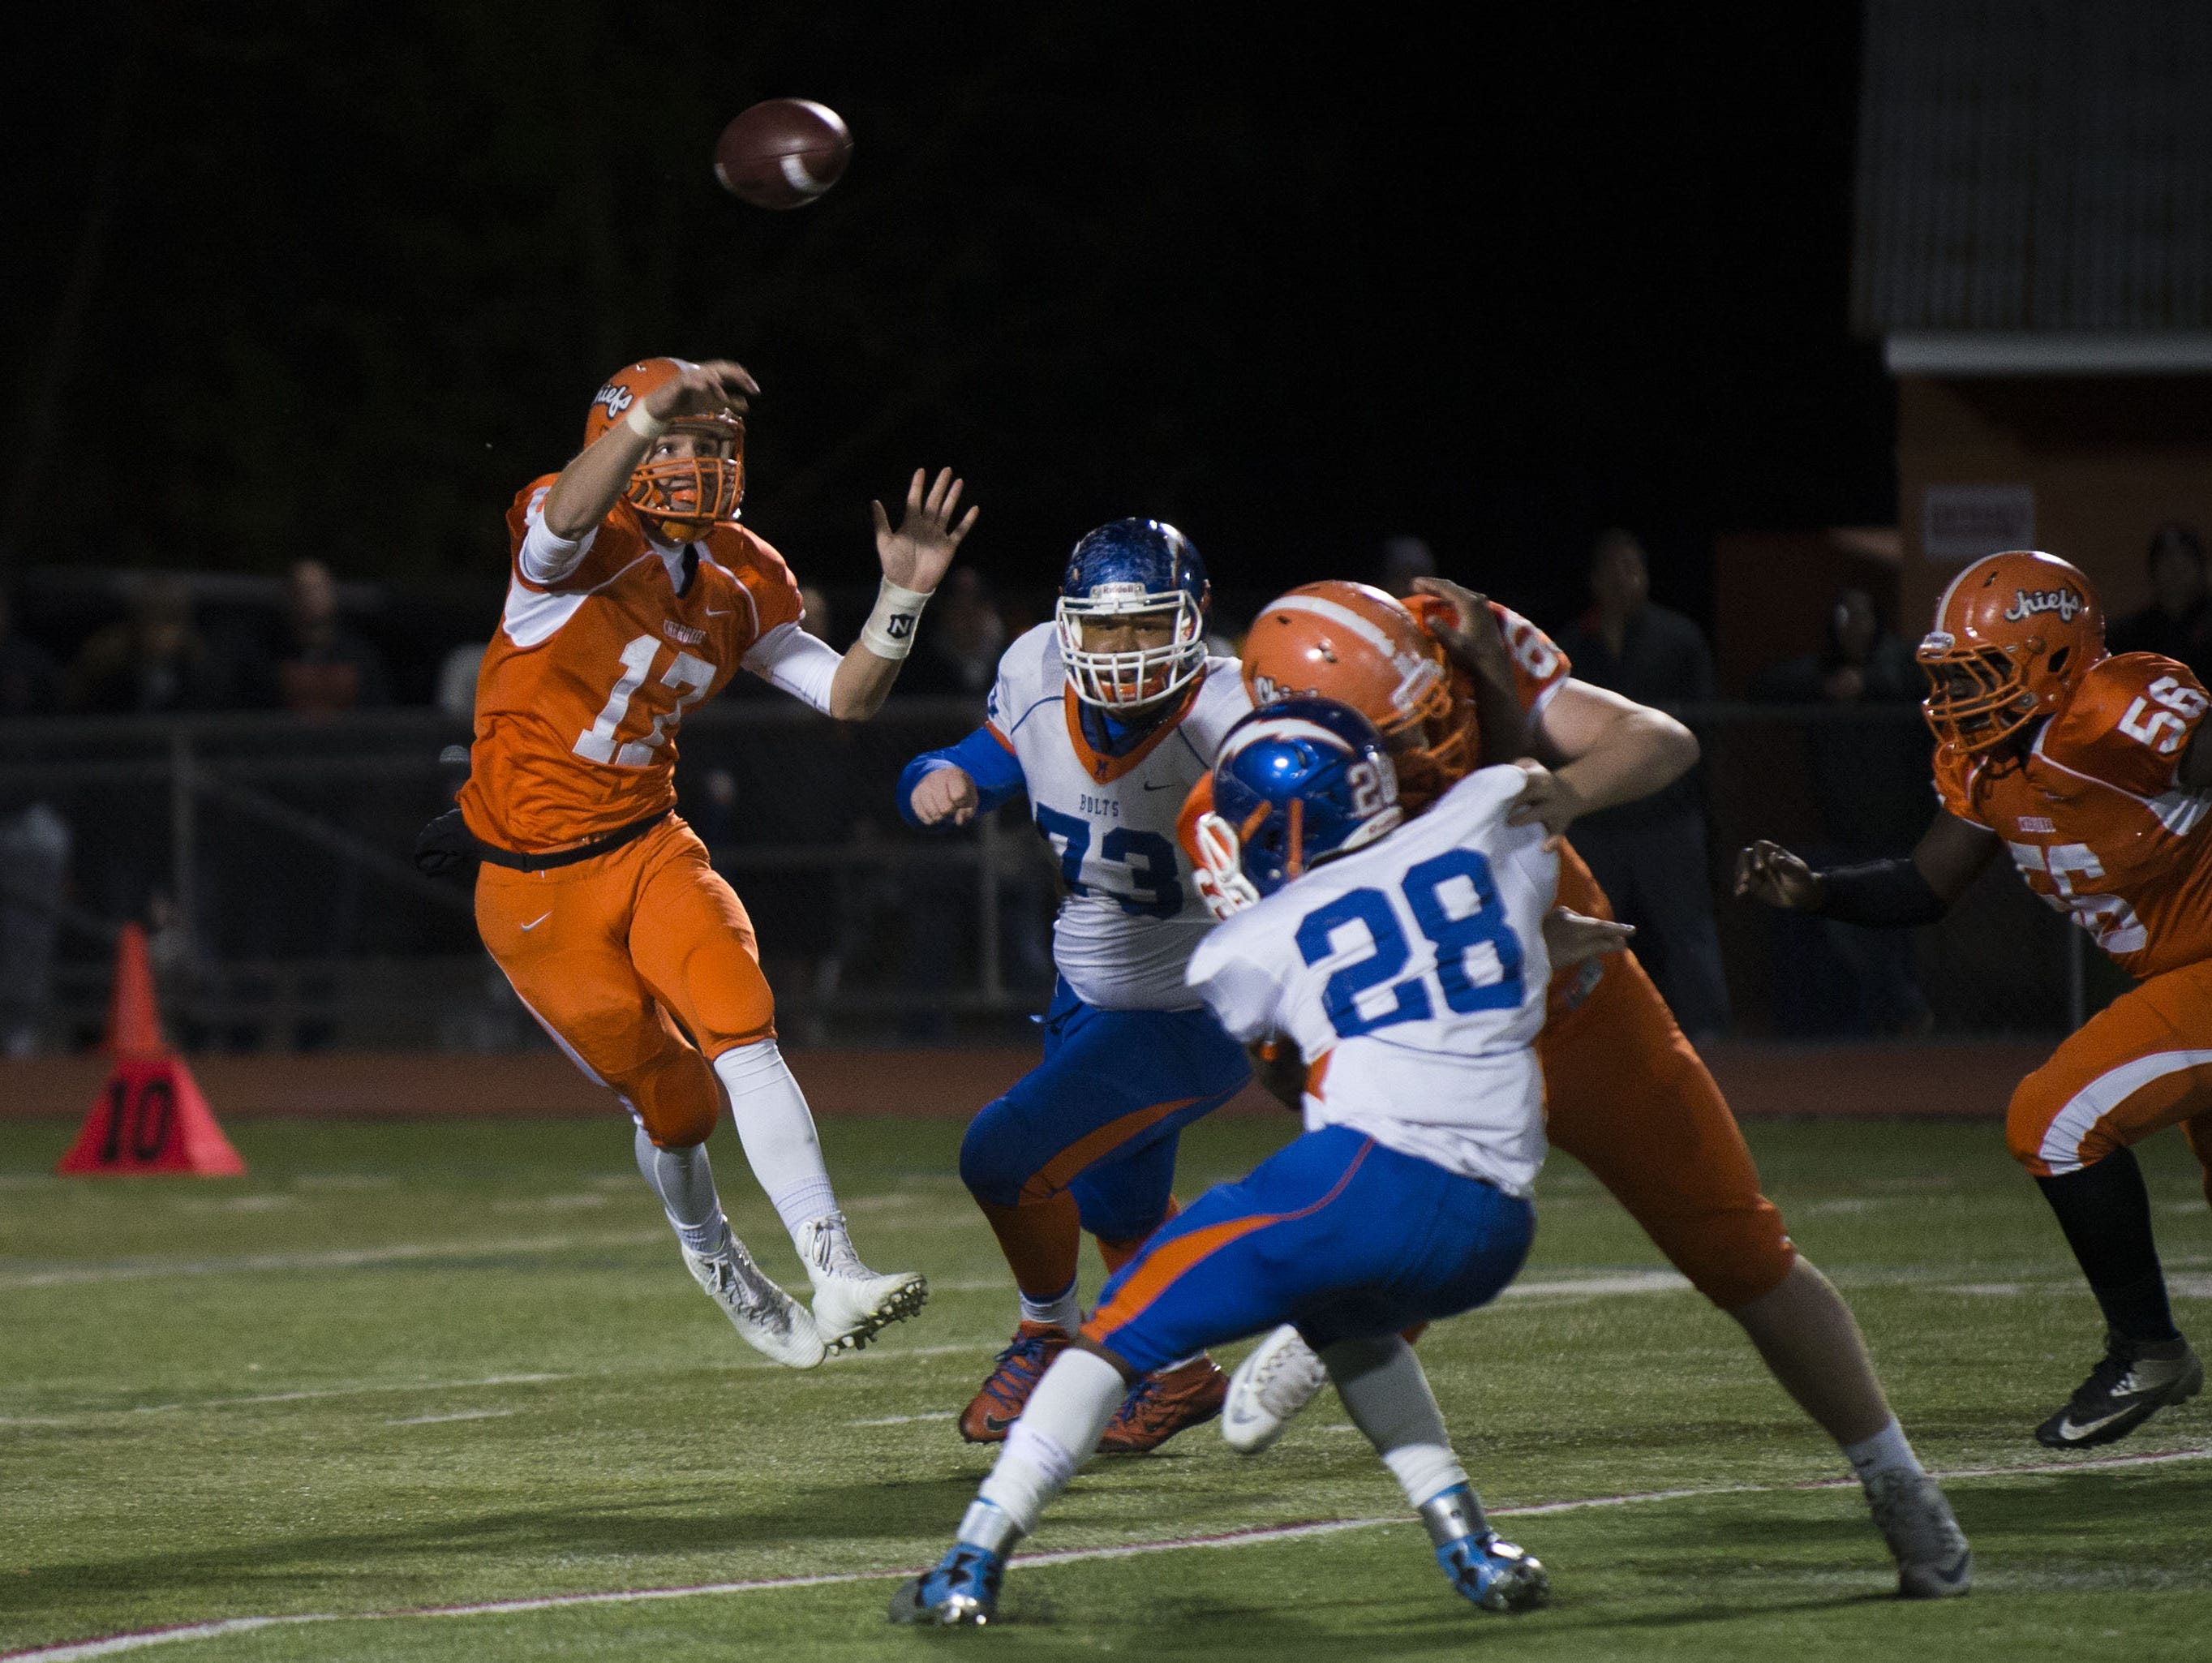 Cherokee quarterback Jacob Bodine leaps as he tosses a pass in Friday's S.J. Group 5 playoff game against Millville.